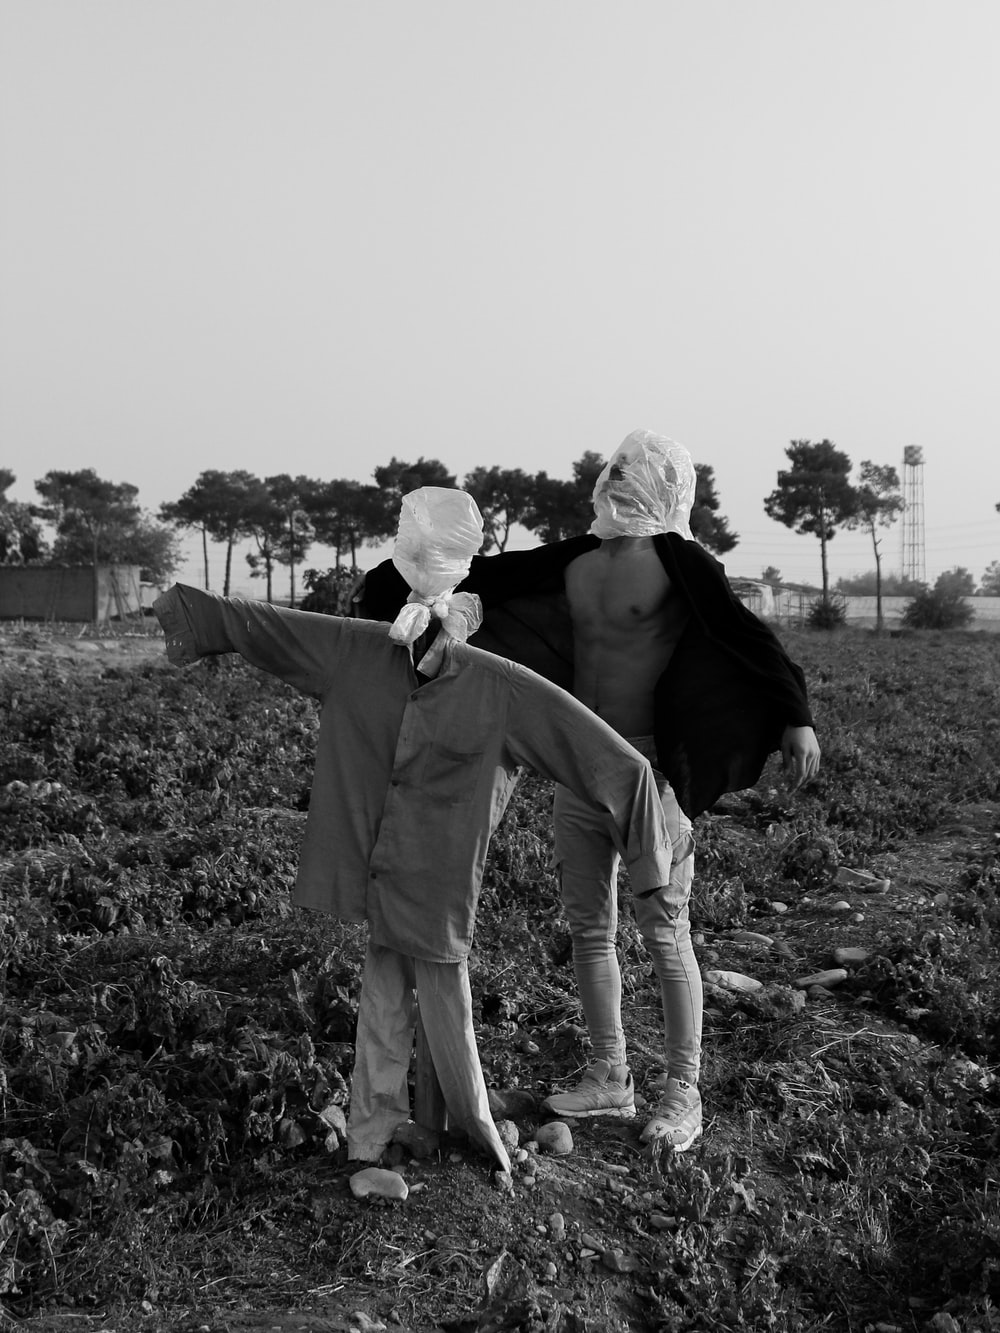 grayscale photography of man standing beside scarecrow